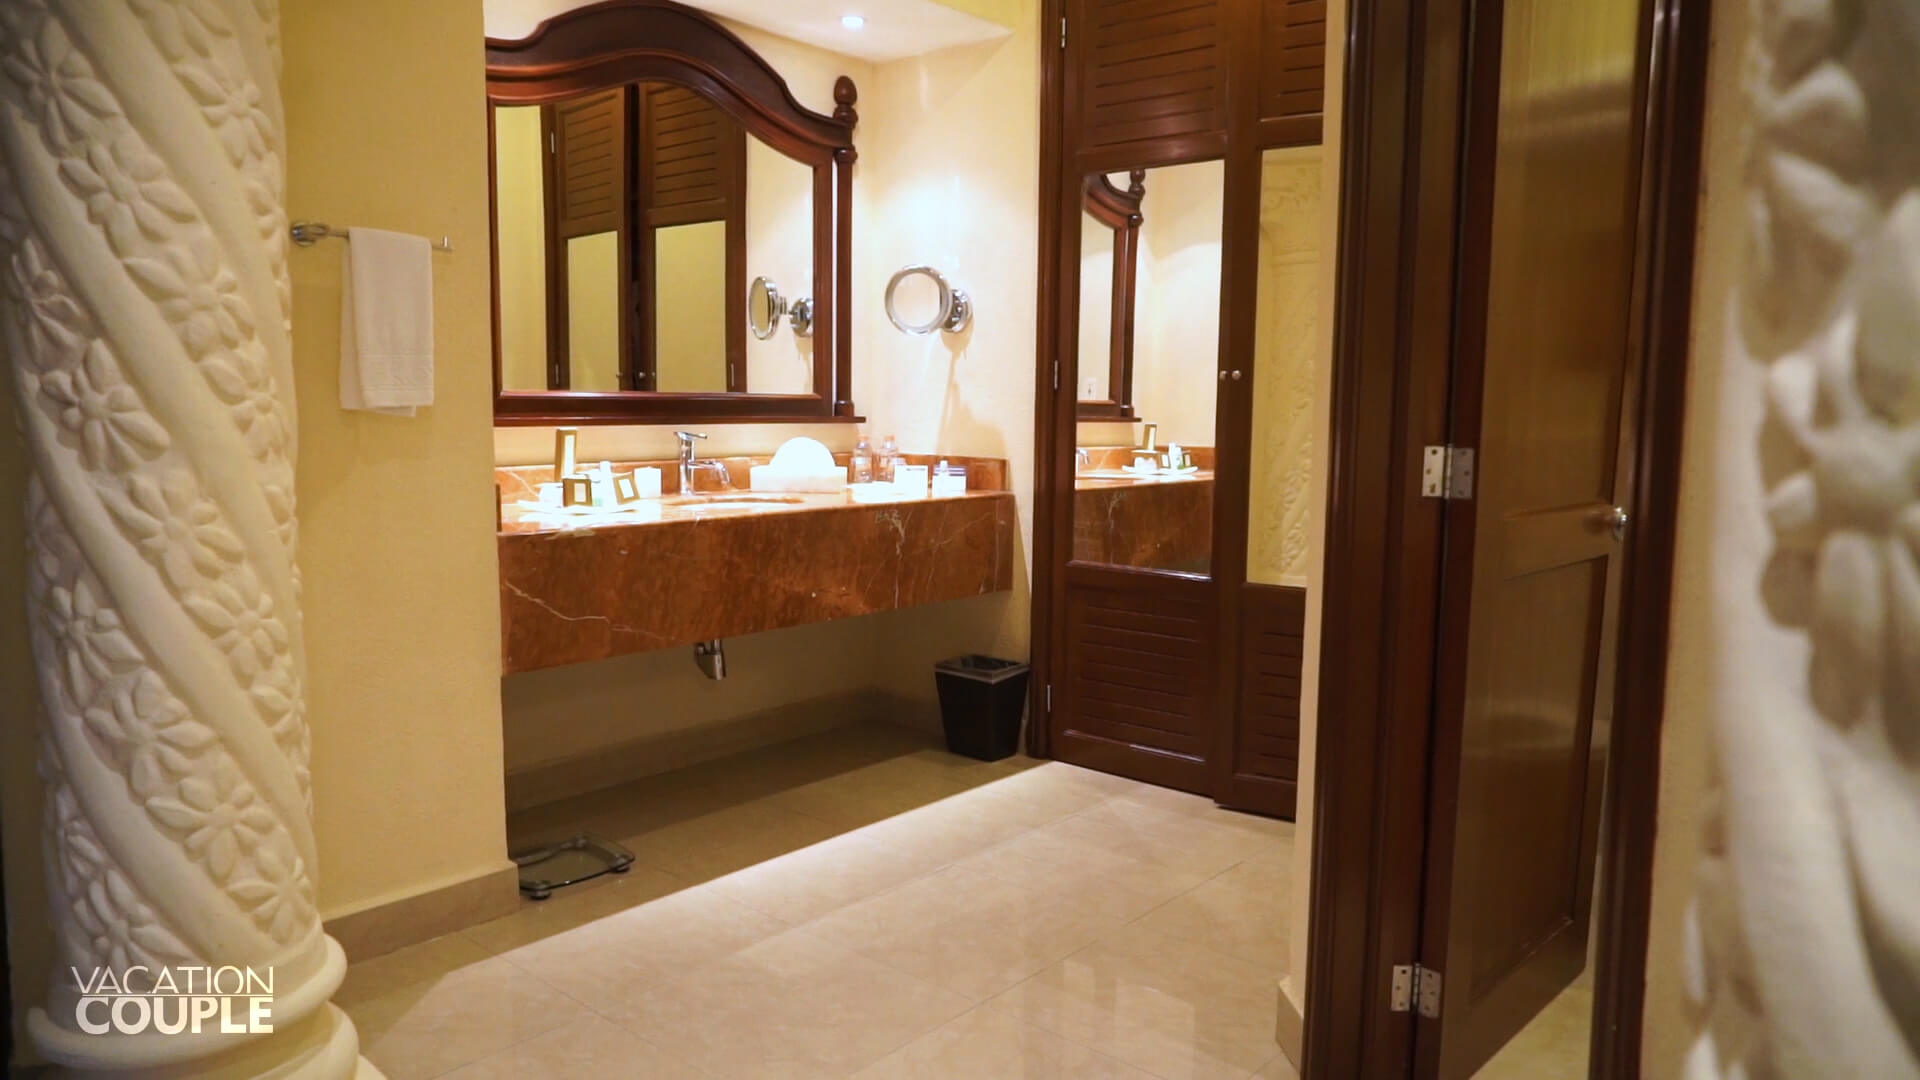 The Royal Playa del carmen room tour, bathroom , amenities, batroom view, vanity, vanity view, sink, mirror, closet. space